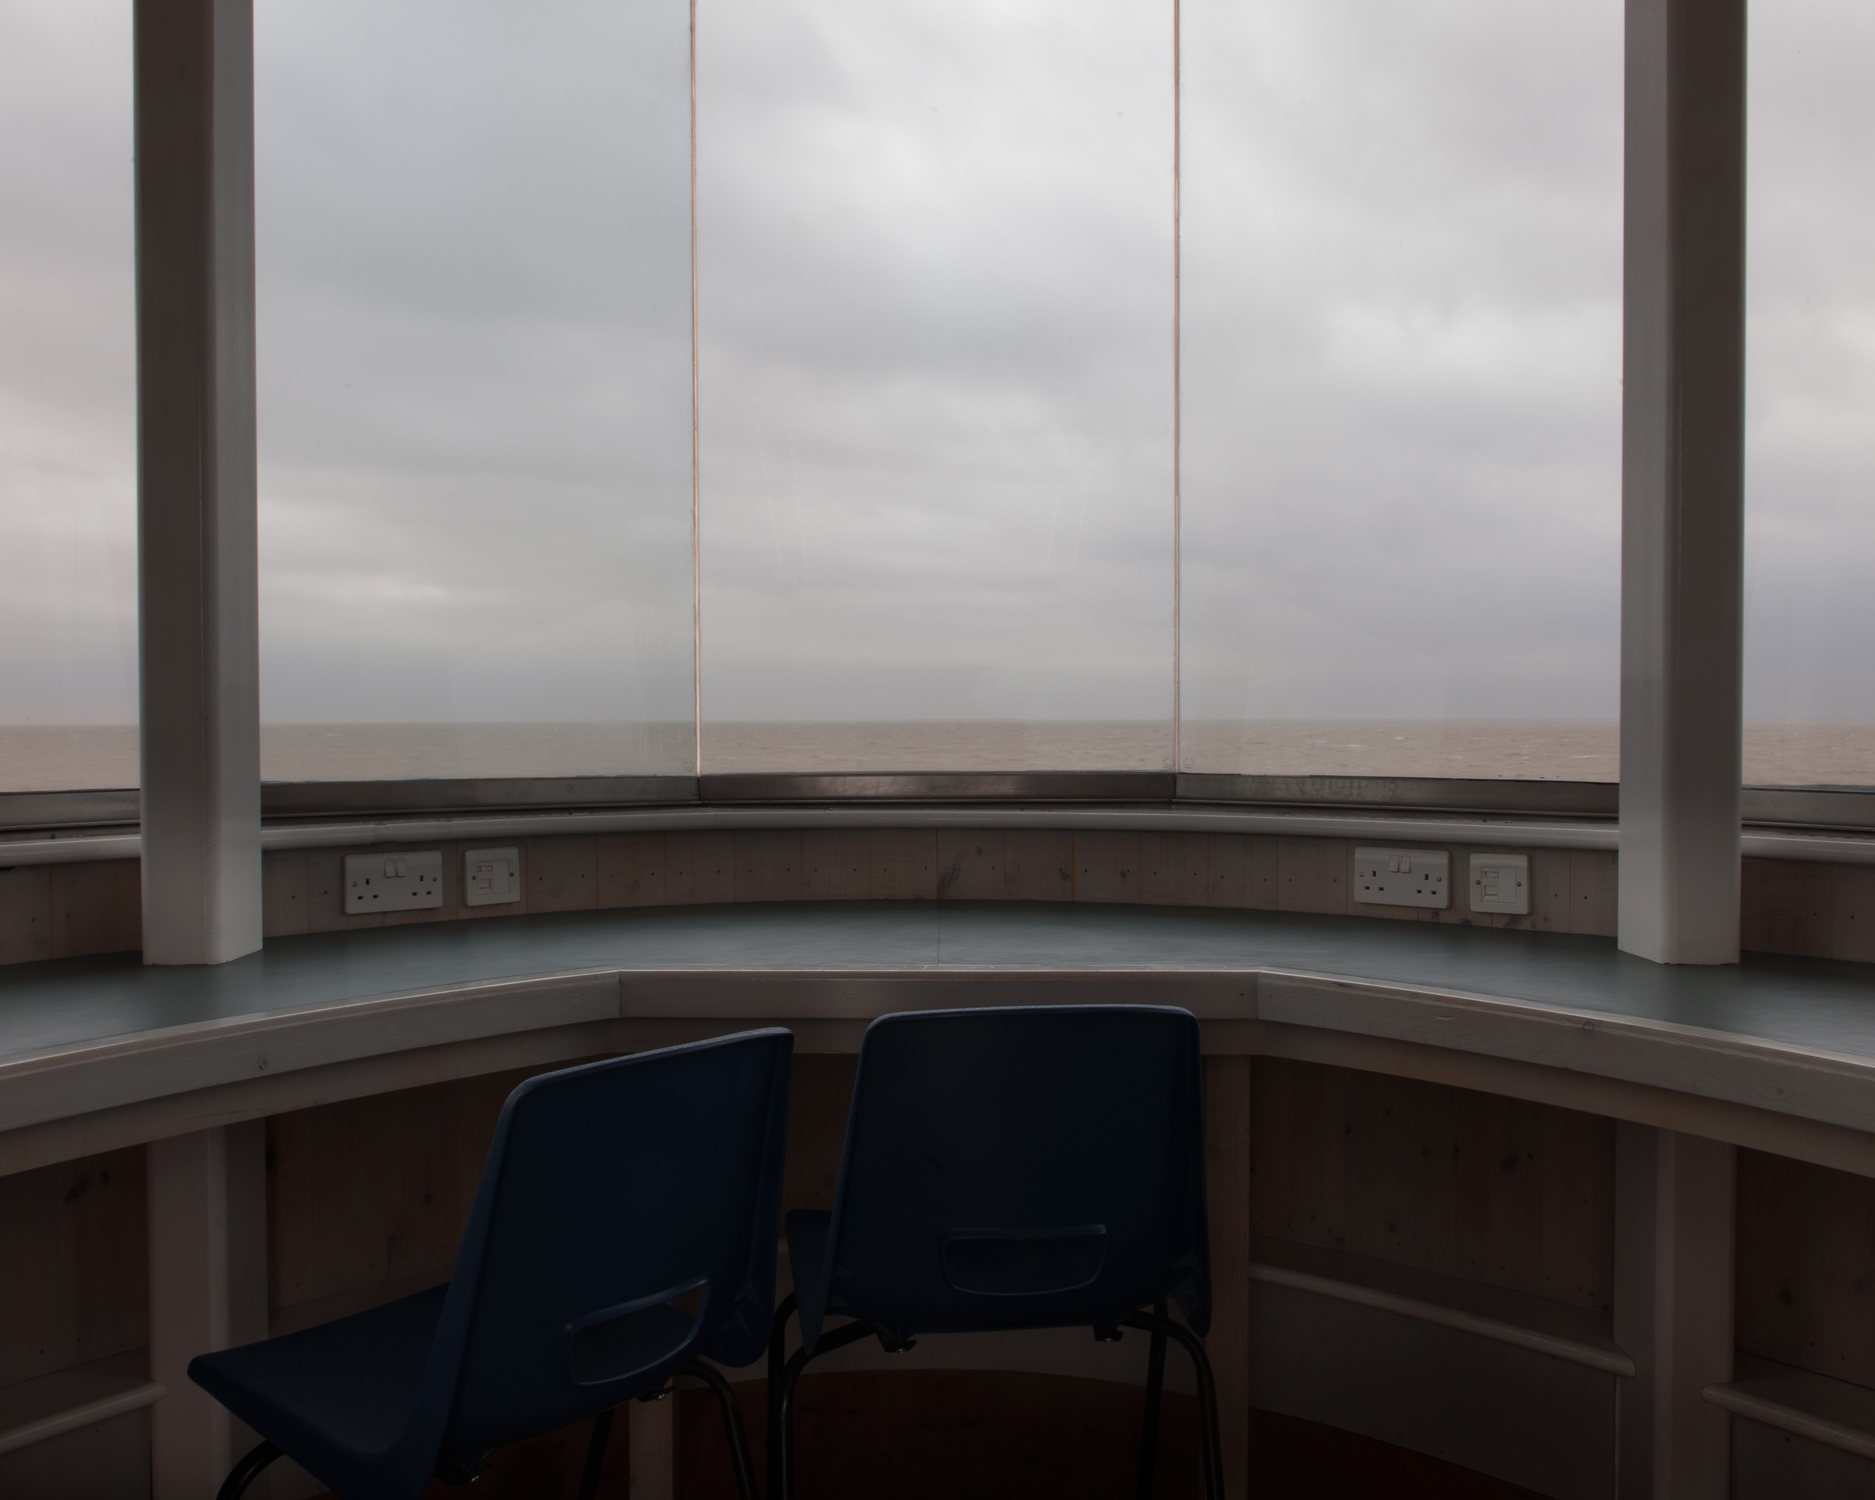 The view from Jaywick martello tower.In 1953 Jaywick, like the rest of the east coast, was hit by the largest tidal surge in modern times. The flood claimed the lives of 35 people and decimated the entire village.